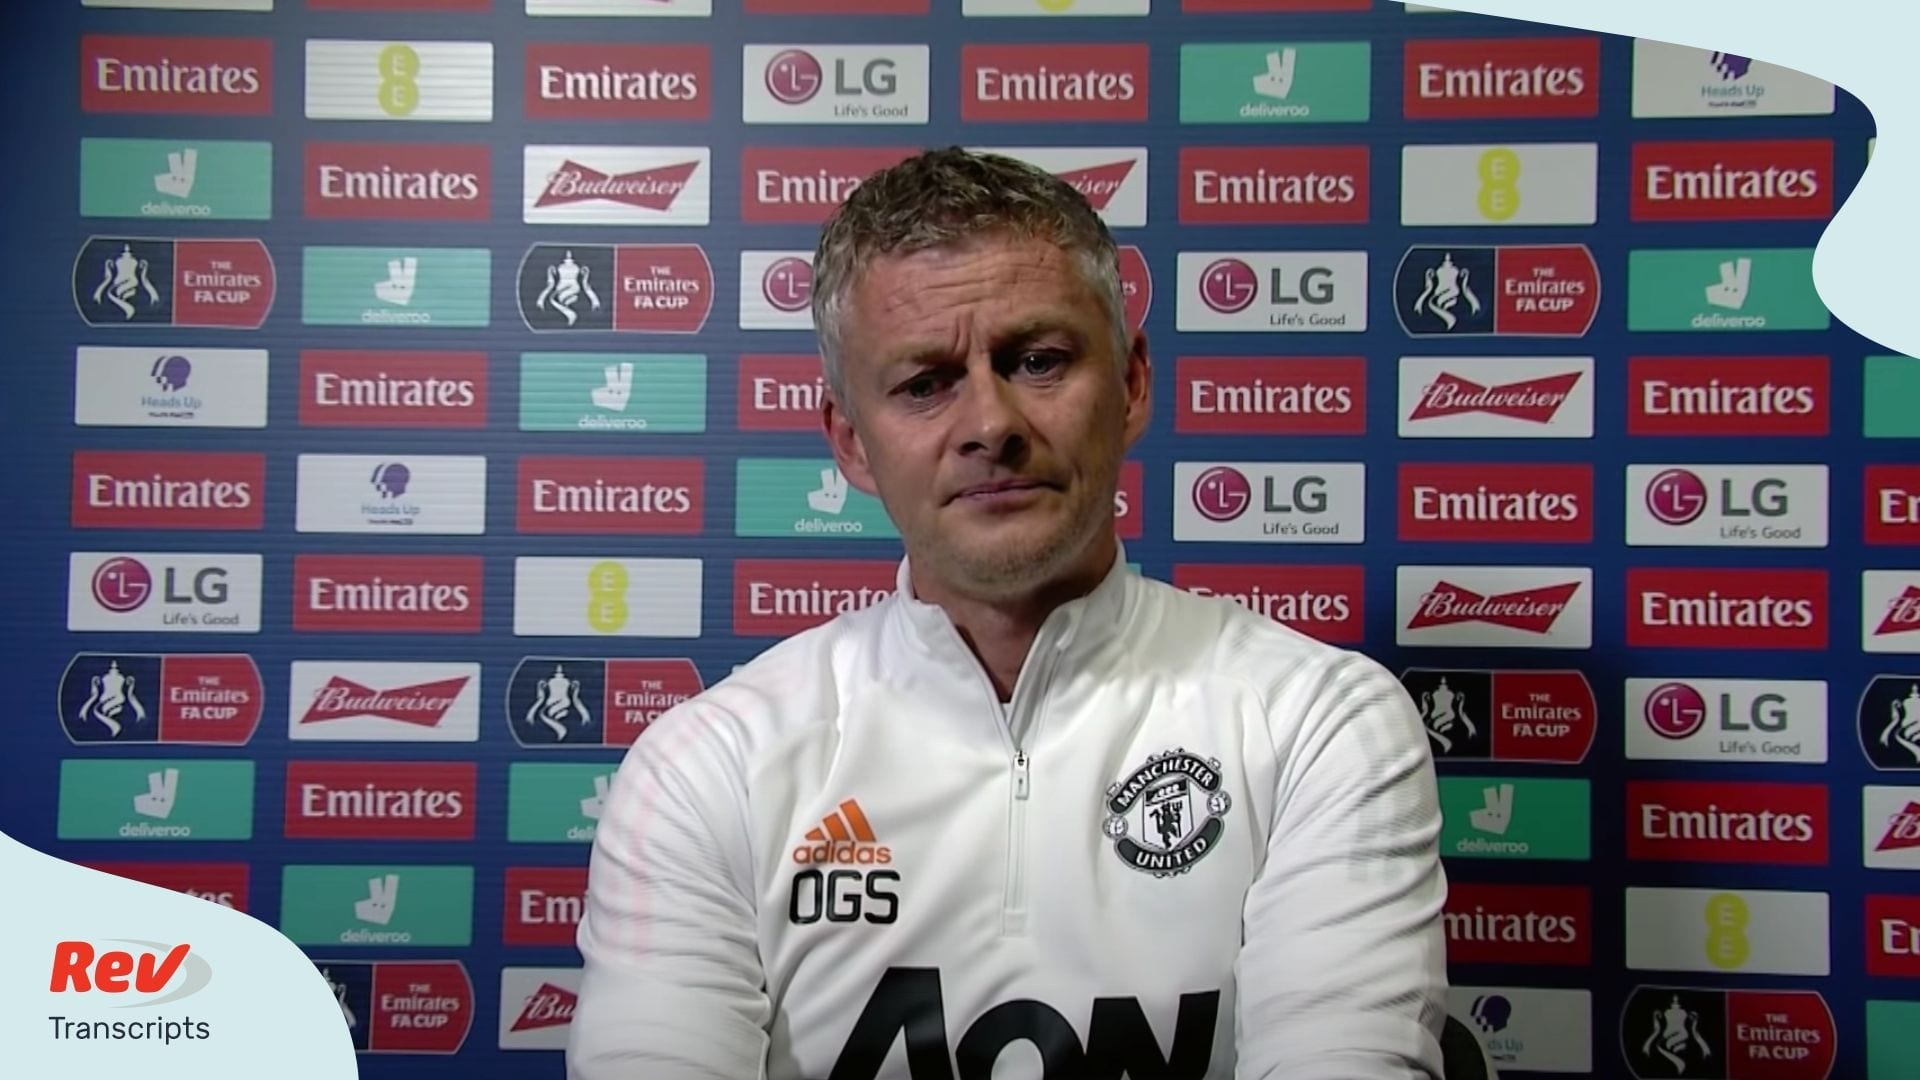 Ole Gunnar Solskjaer Press Conference Transcript Chelsea v Manchester United